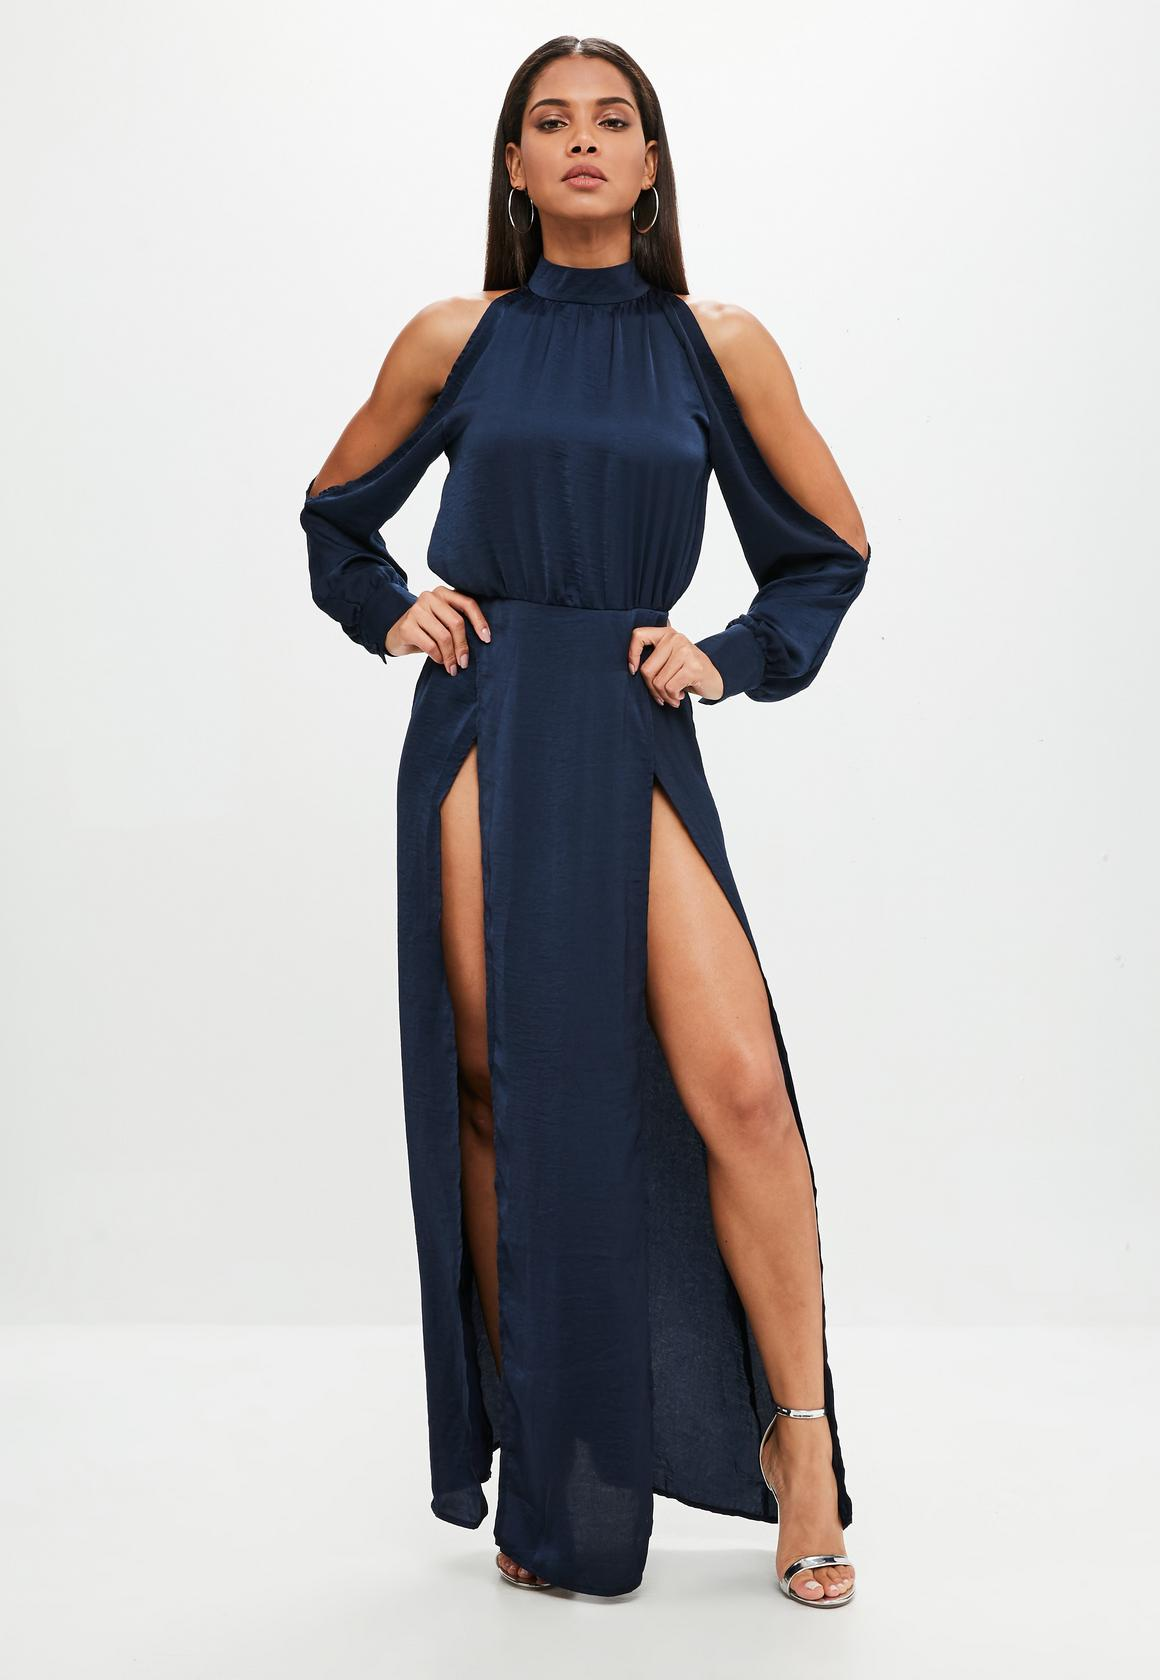 Shop online for Navy Split Front Maxi Dress